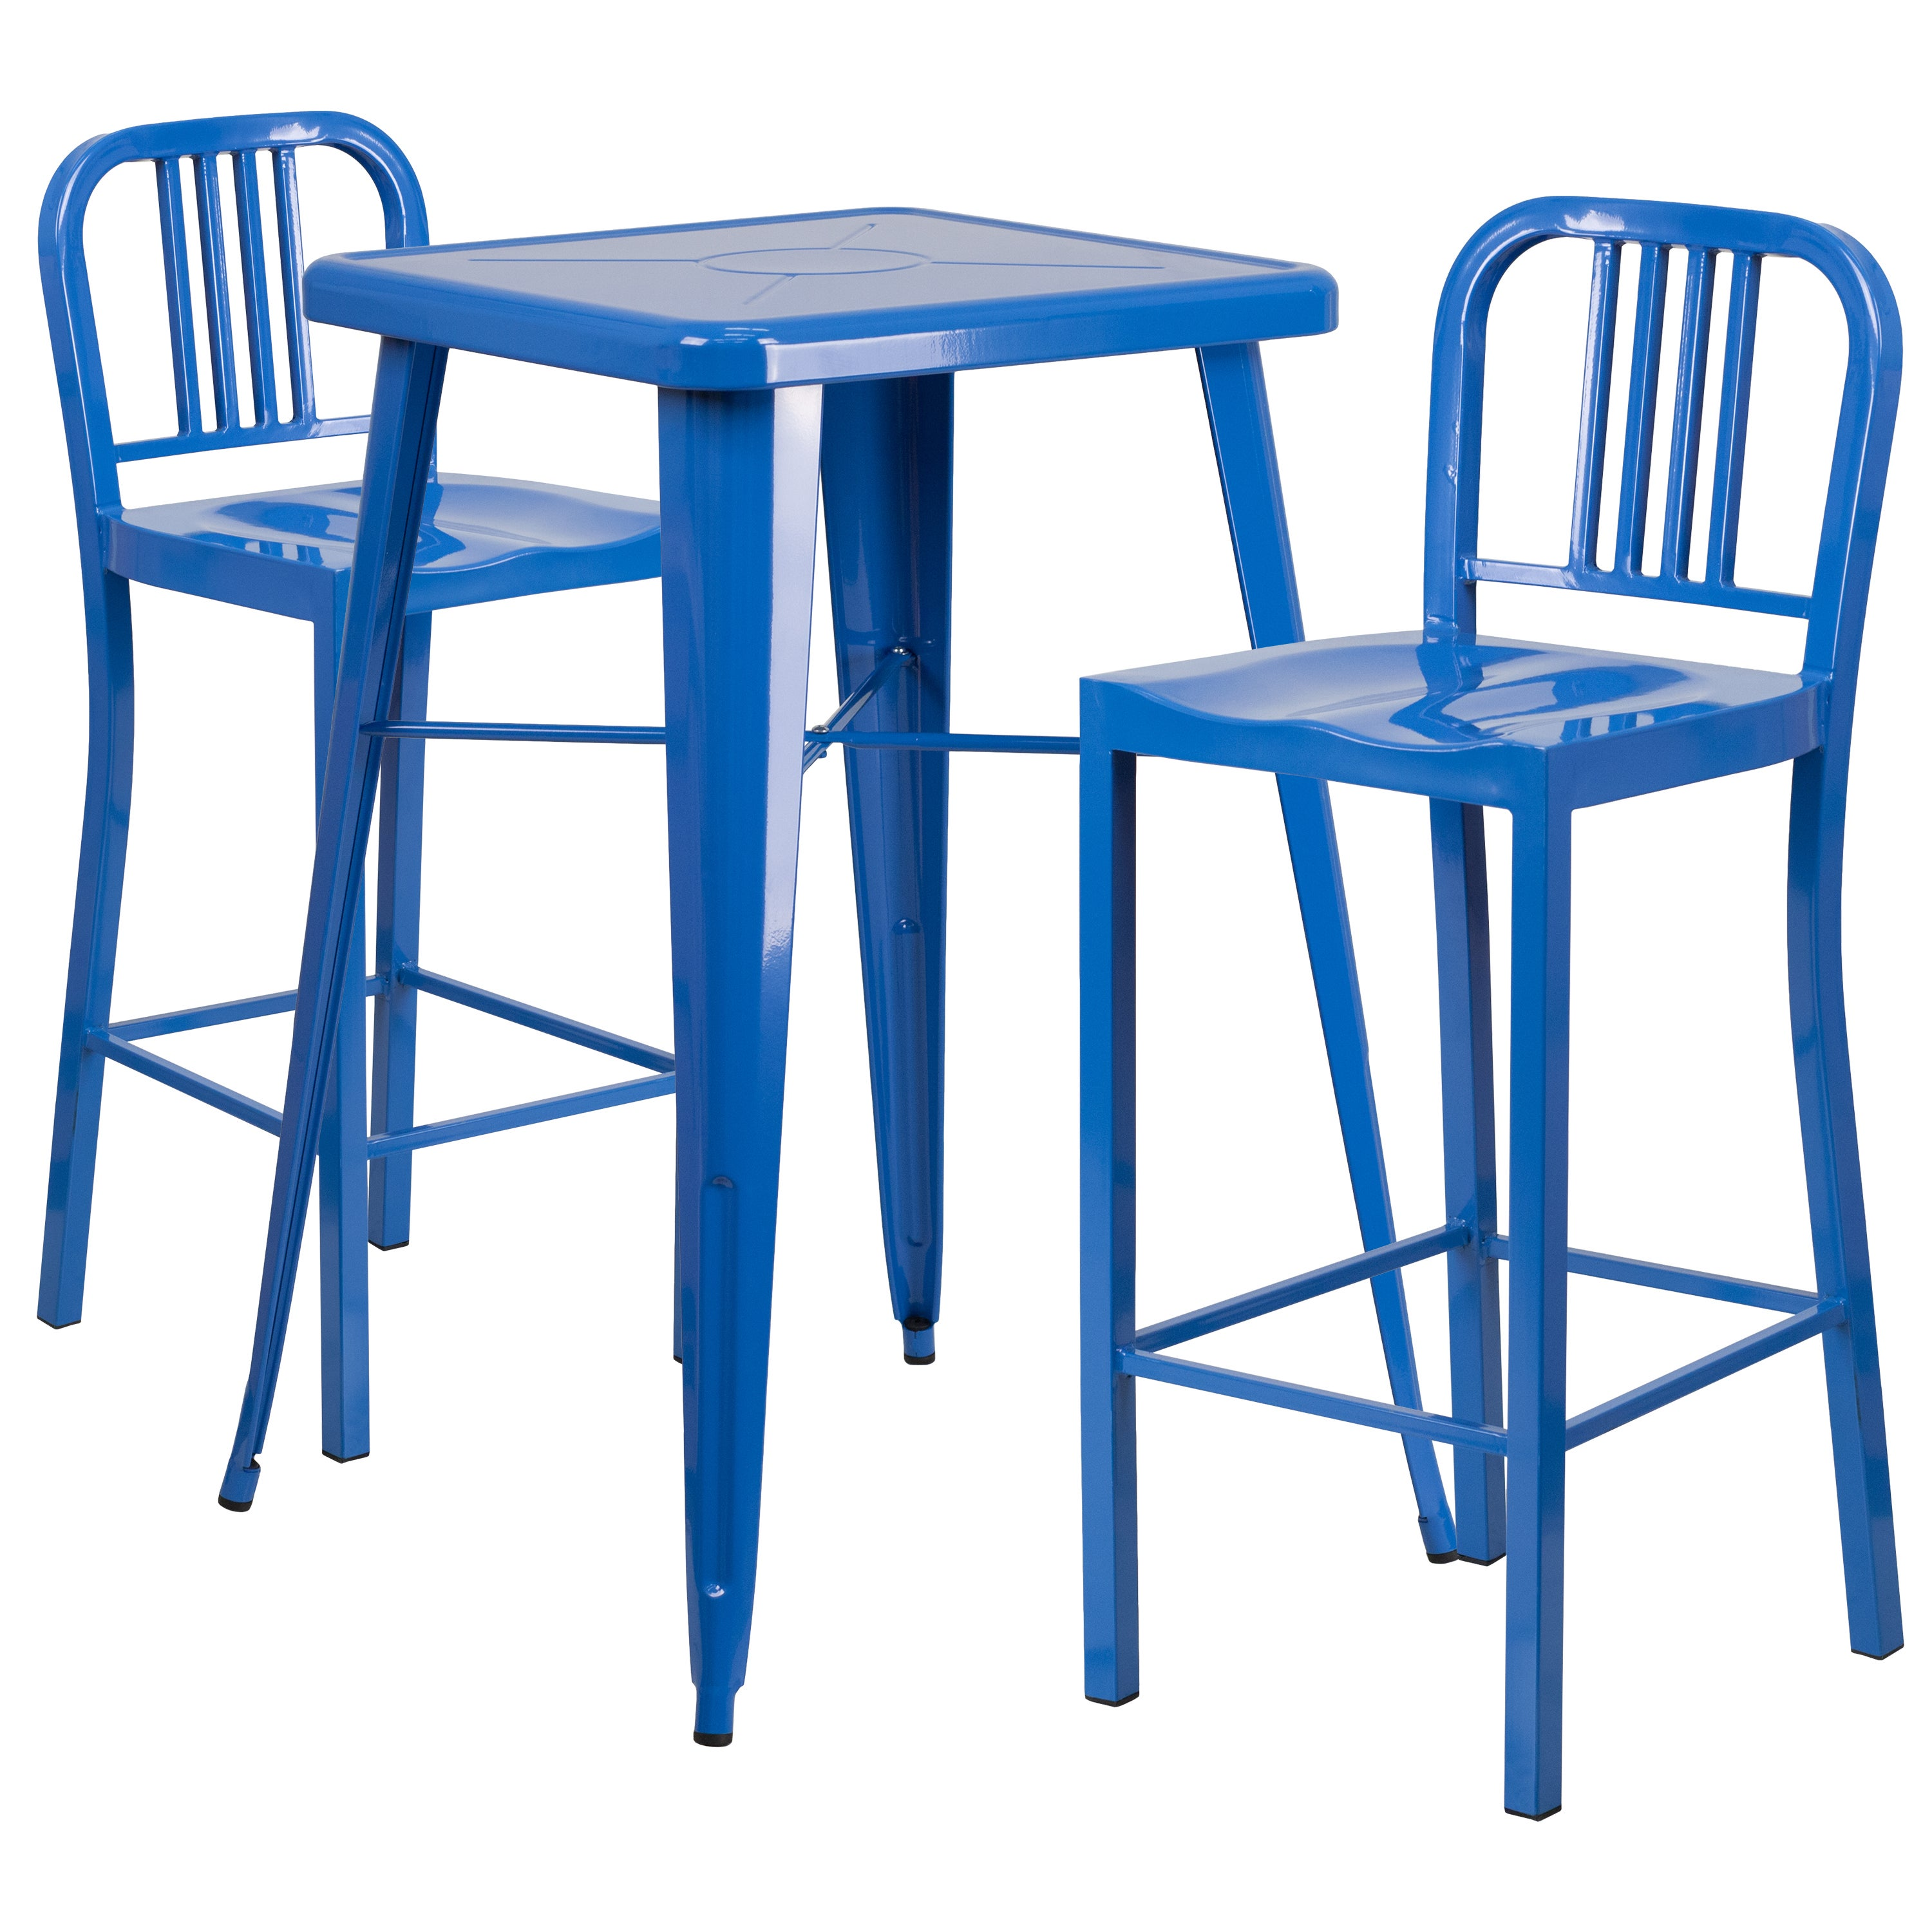 Shop Metal Indoor-Outdoor Bar Table Set with 2 Vertical Slat Back Barstools - Free Shipping Today - Overstock.com - 10867848  sc 1 st  Overstock.com & Shop Metal Indoor-Outdoor Bar Table Set with 2 Vertical Slat Back ...